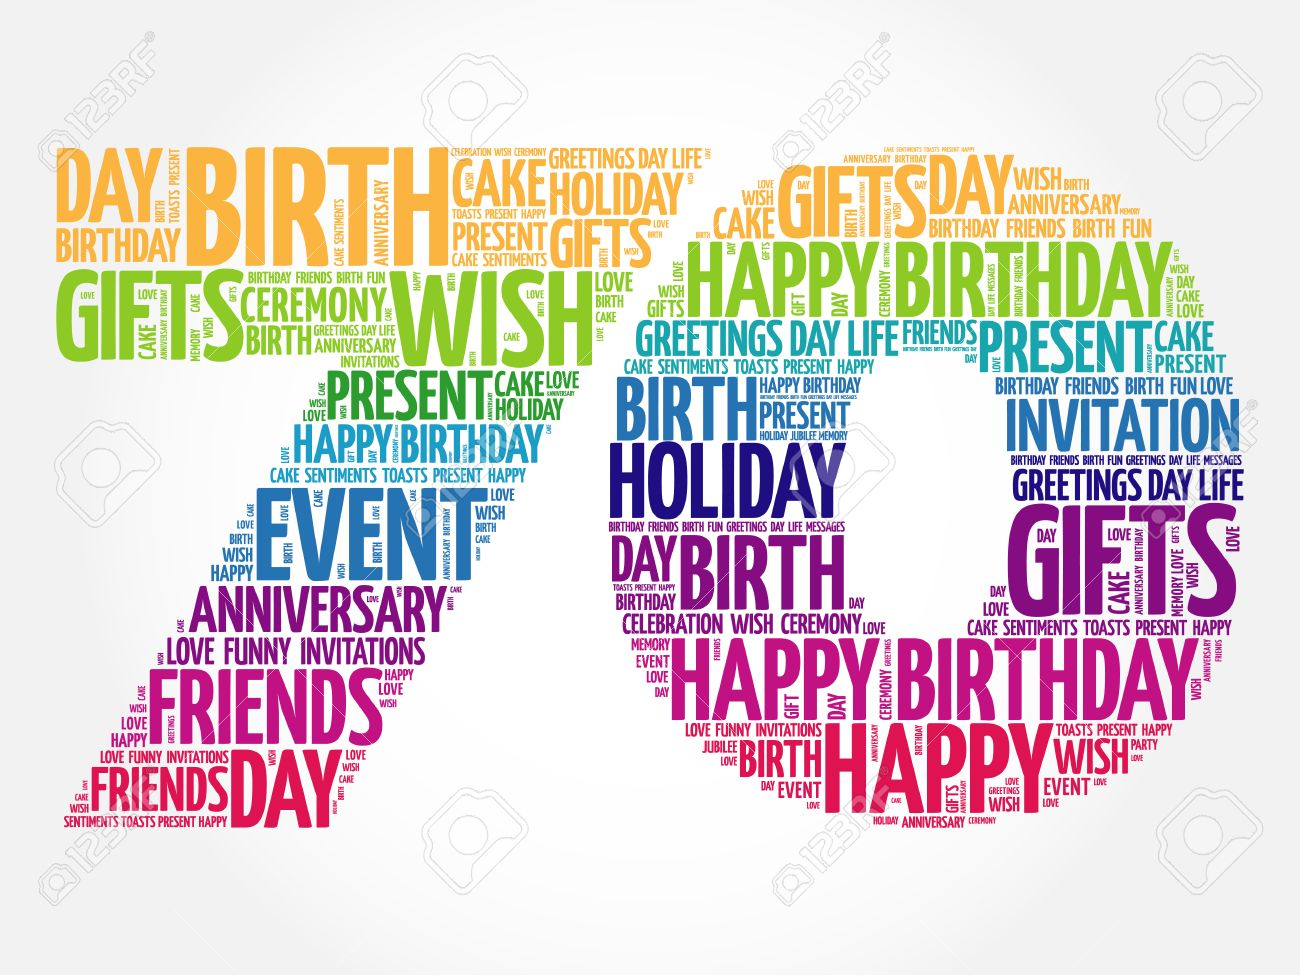 70th birthday stock photos royalty free 70th birthday images